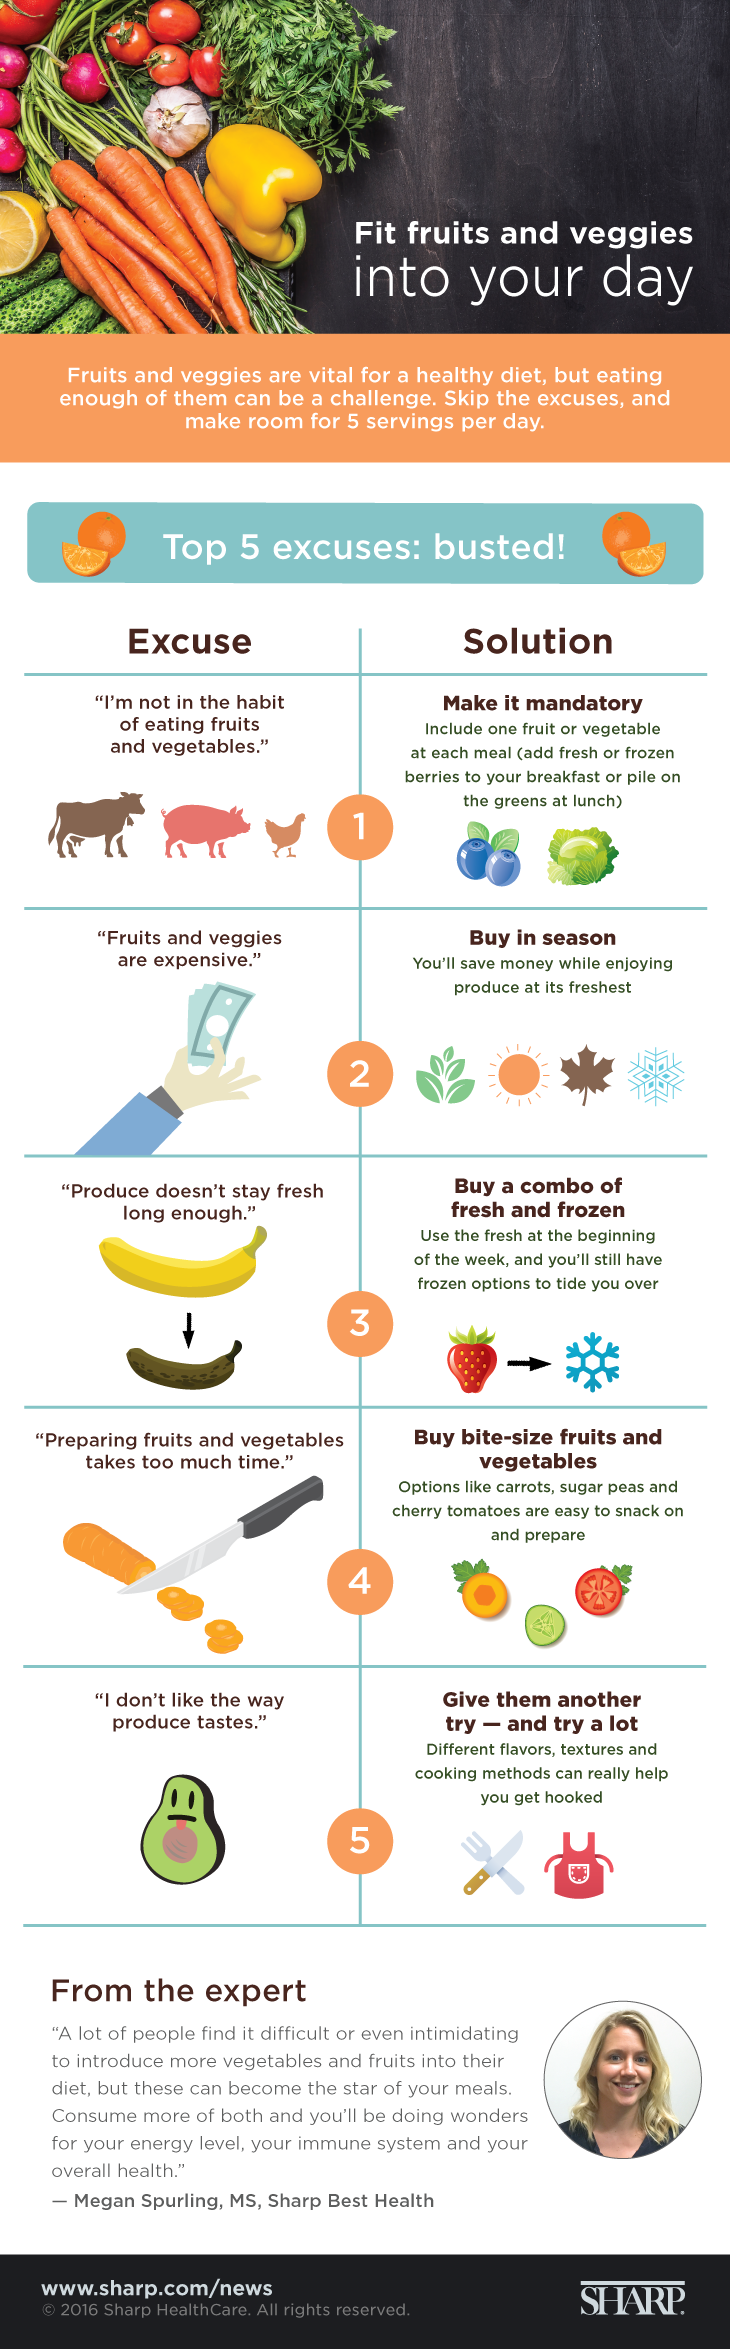 Fit fruits and veggies into your day (infographic). Fruits and veggies are vital for a healthy diet, but eating enough of them can be a challenge. Skip the excuses and make room for five servings per day. Top five excuses: busted! Excuse – I'm not in the habit of eating fruits and vegetables. Solution – Make it mandatory. Include one fruit or vegetable at each meal (add fresh or frozen berries to your breakfast or pile on the greens at lunch). Excuse – Fruits and veggies are expensive. Solution – Buy in season. You'll save money while enjoying produce at its freshest. Excuse – Produce doesn't stay fresh long enough. Solution –  Buy a combo of fresh and frozen. Use the fresh at the beginning of the week, and you'll still have frozen options to tide you over. Excuse – Preparing fruits and vegetables takes too much time. Solution – Buy bite-size fruits and vegetables. Options like carrots, sugar peas and cherry tomatoes are easy to snack on and prepare. Excuse – I don't like the way produce tastes. Solution – Give them another try – and try a lot. Different flavors, textures and cooking methods can really help you get hooked. A lot of people find it difficult or even intimidating to introduce more vegetables and fruits into their diet, but these can become the star of your meals, says Megan Spurling, MS, with Sharp Best Health. Consume more of both and you'll be doing wonders for your energy level, your immune system and your overall health.